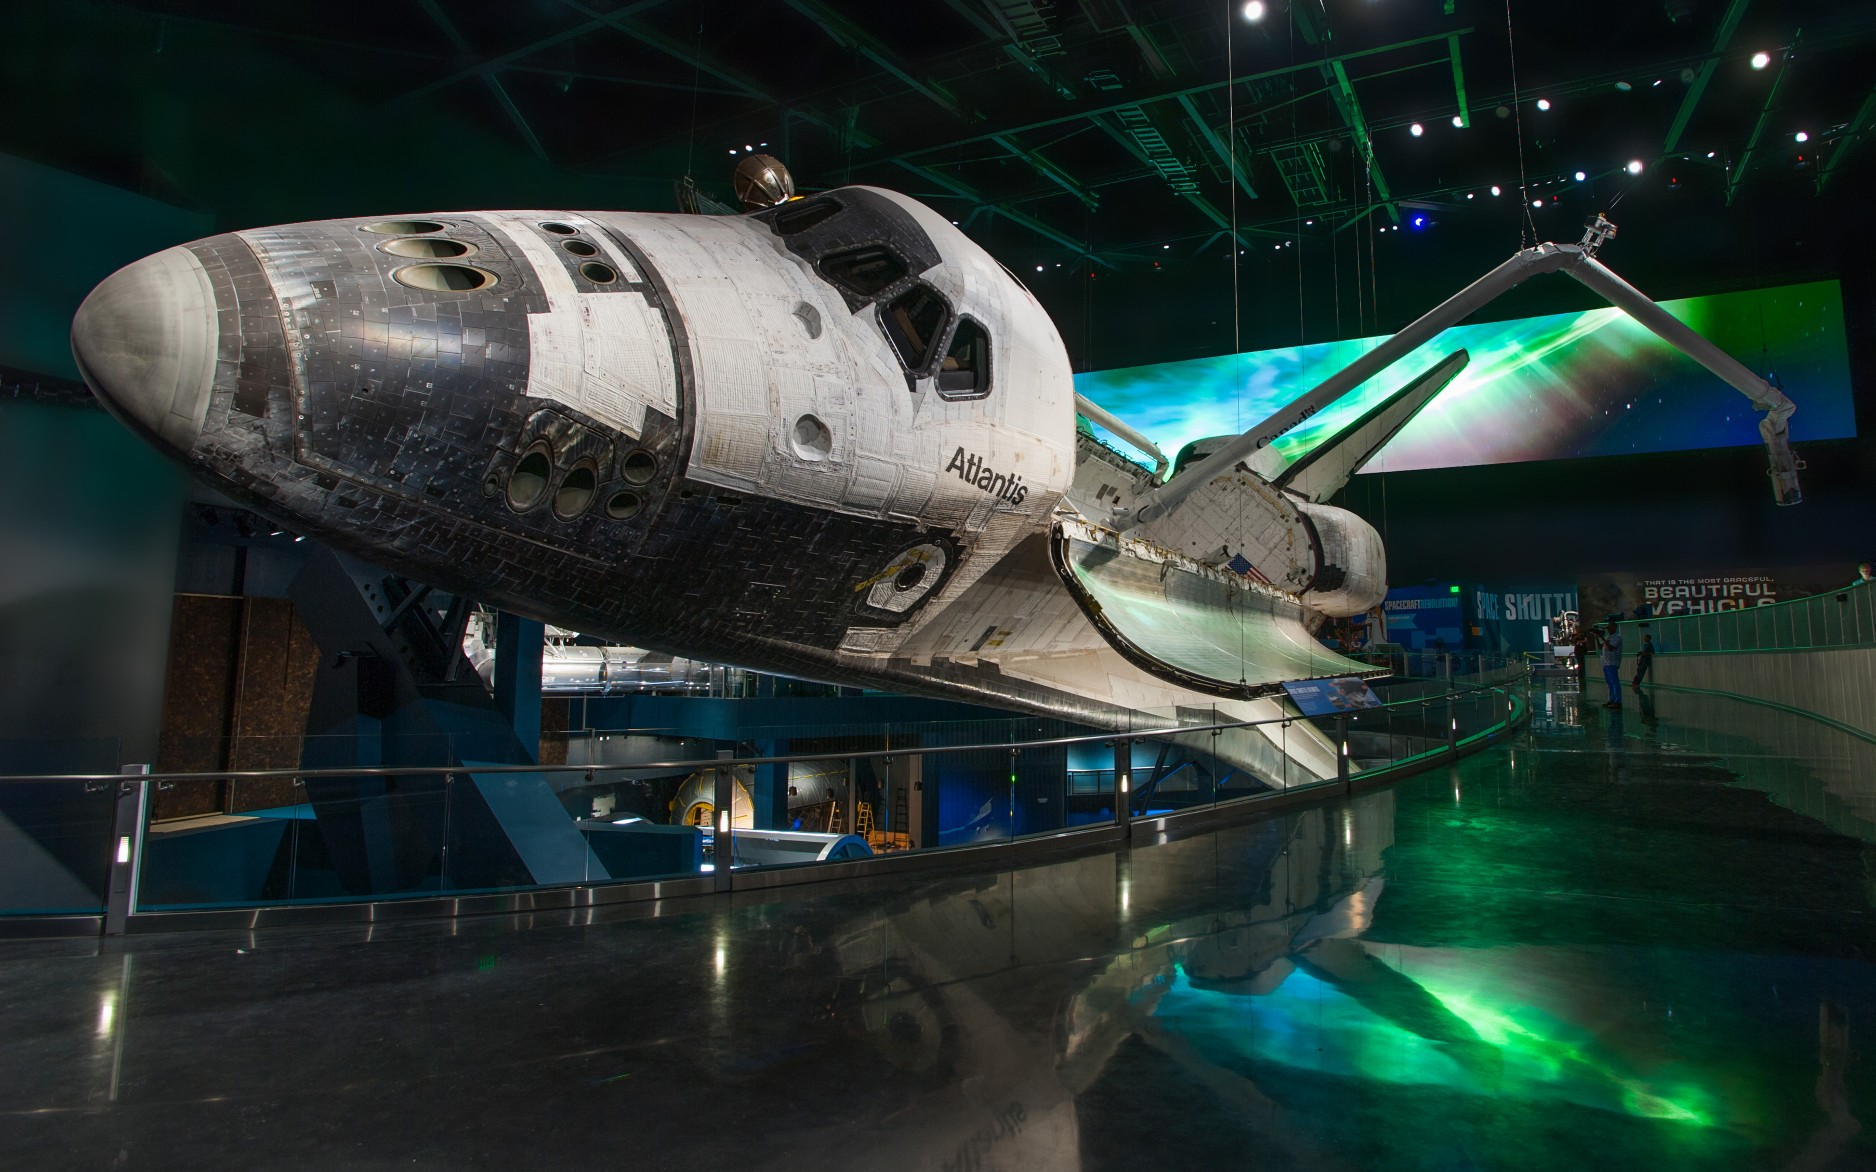 The space shuttle Atlantis is the centerpiece of a new 90,000 square feet museum at the Kennedy Space Center.